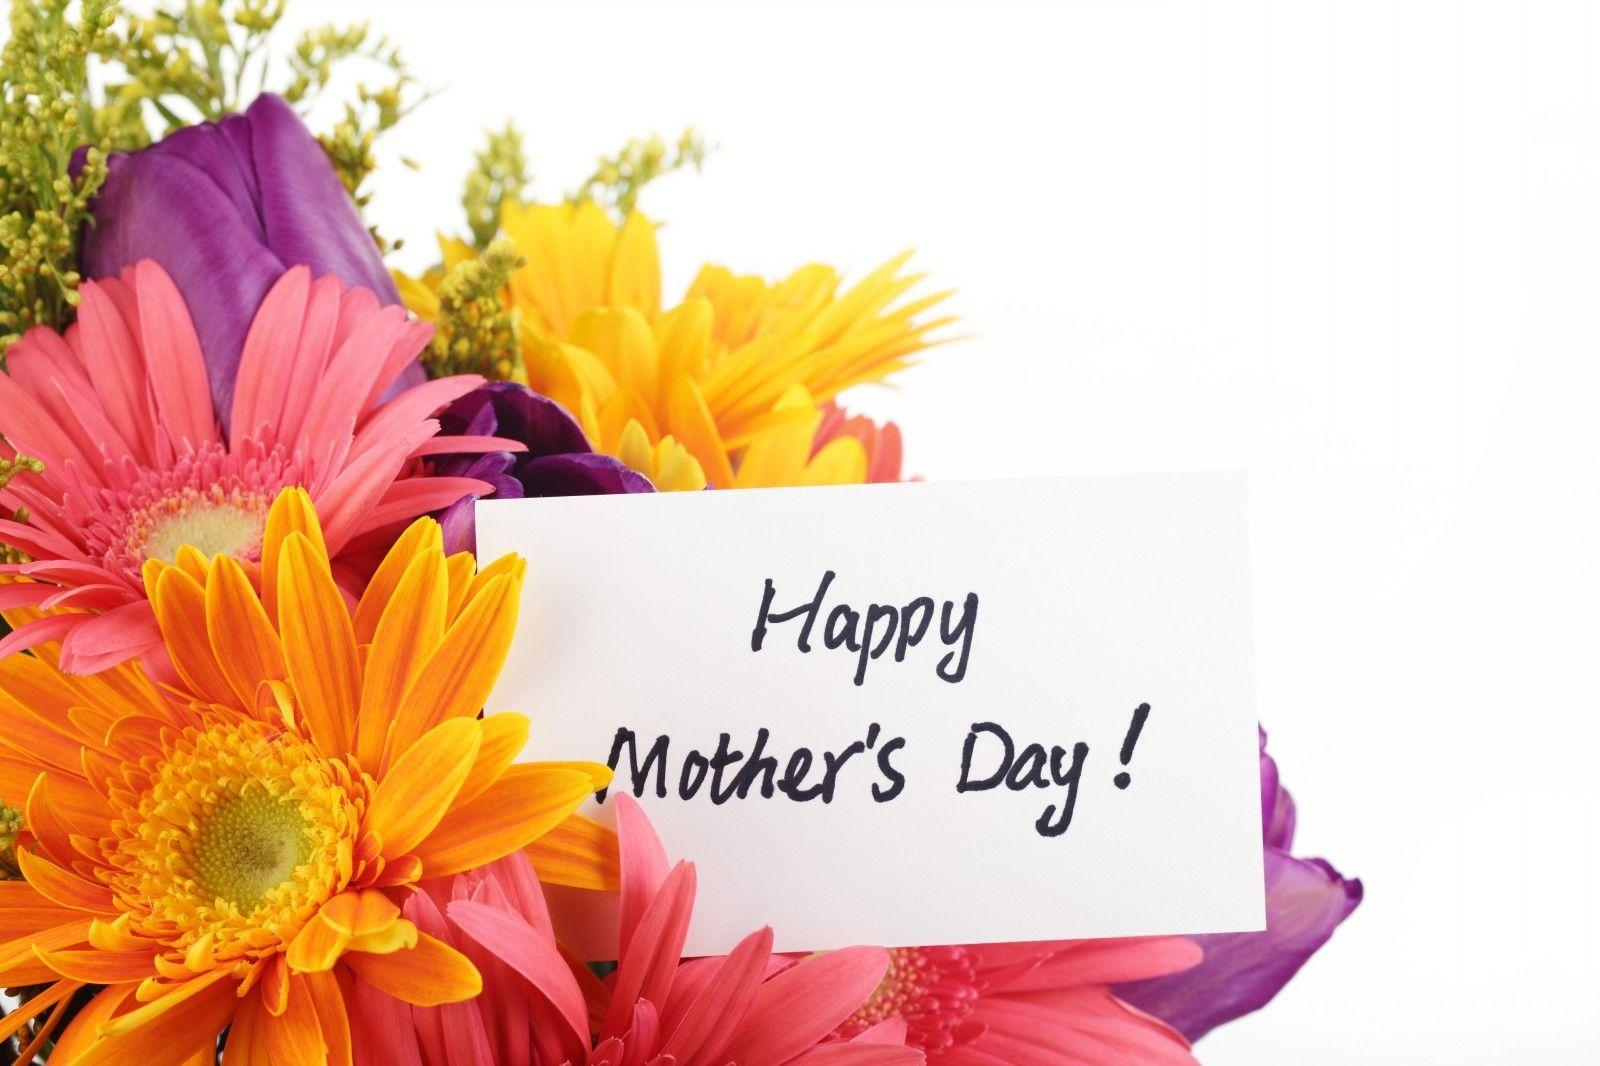 Mothers Day Wallpapers Free Download | Free Wallpapers | Pinterest ...